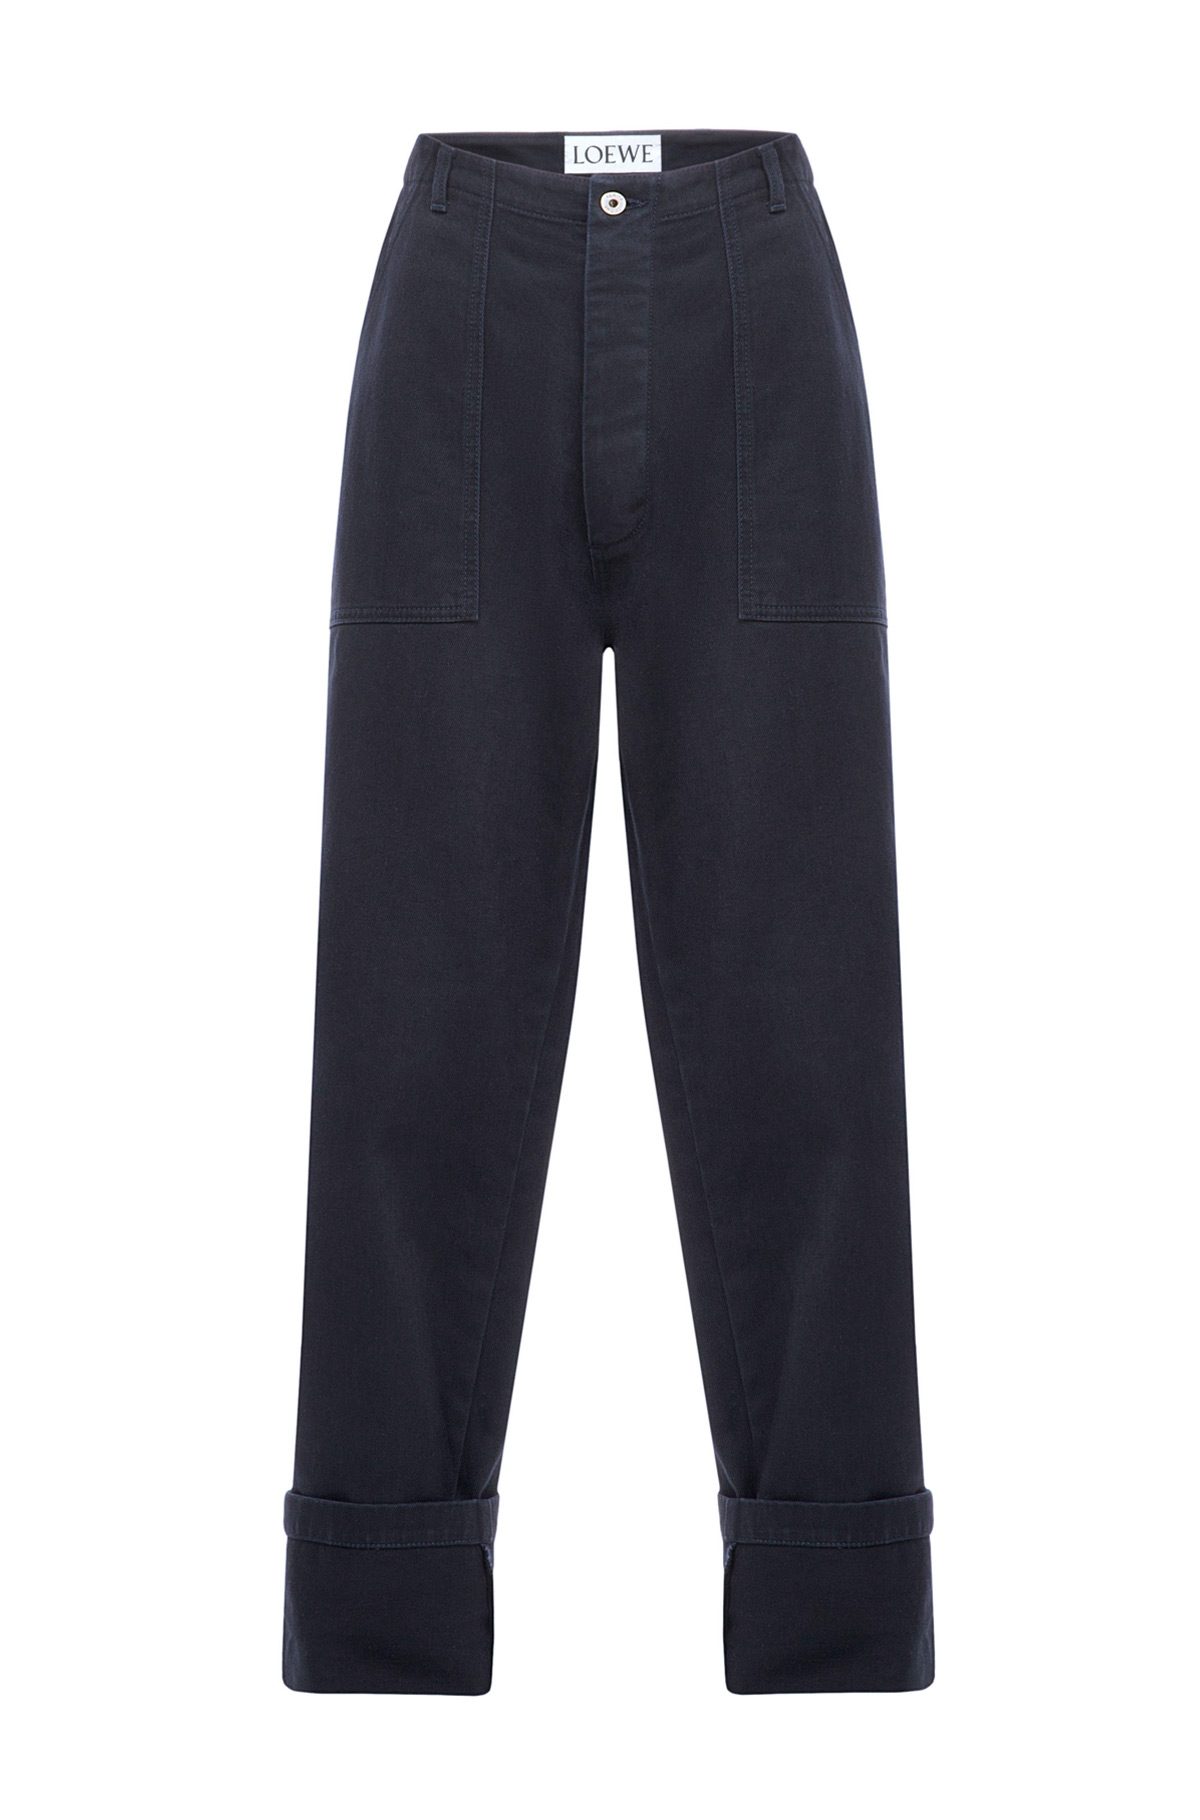 LOEWE Patch Pocket Trousers Dark Navy Blue front